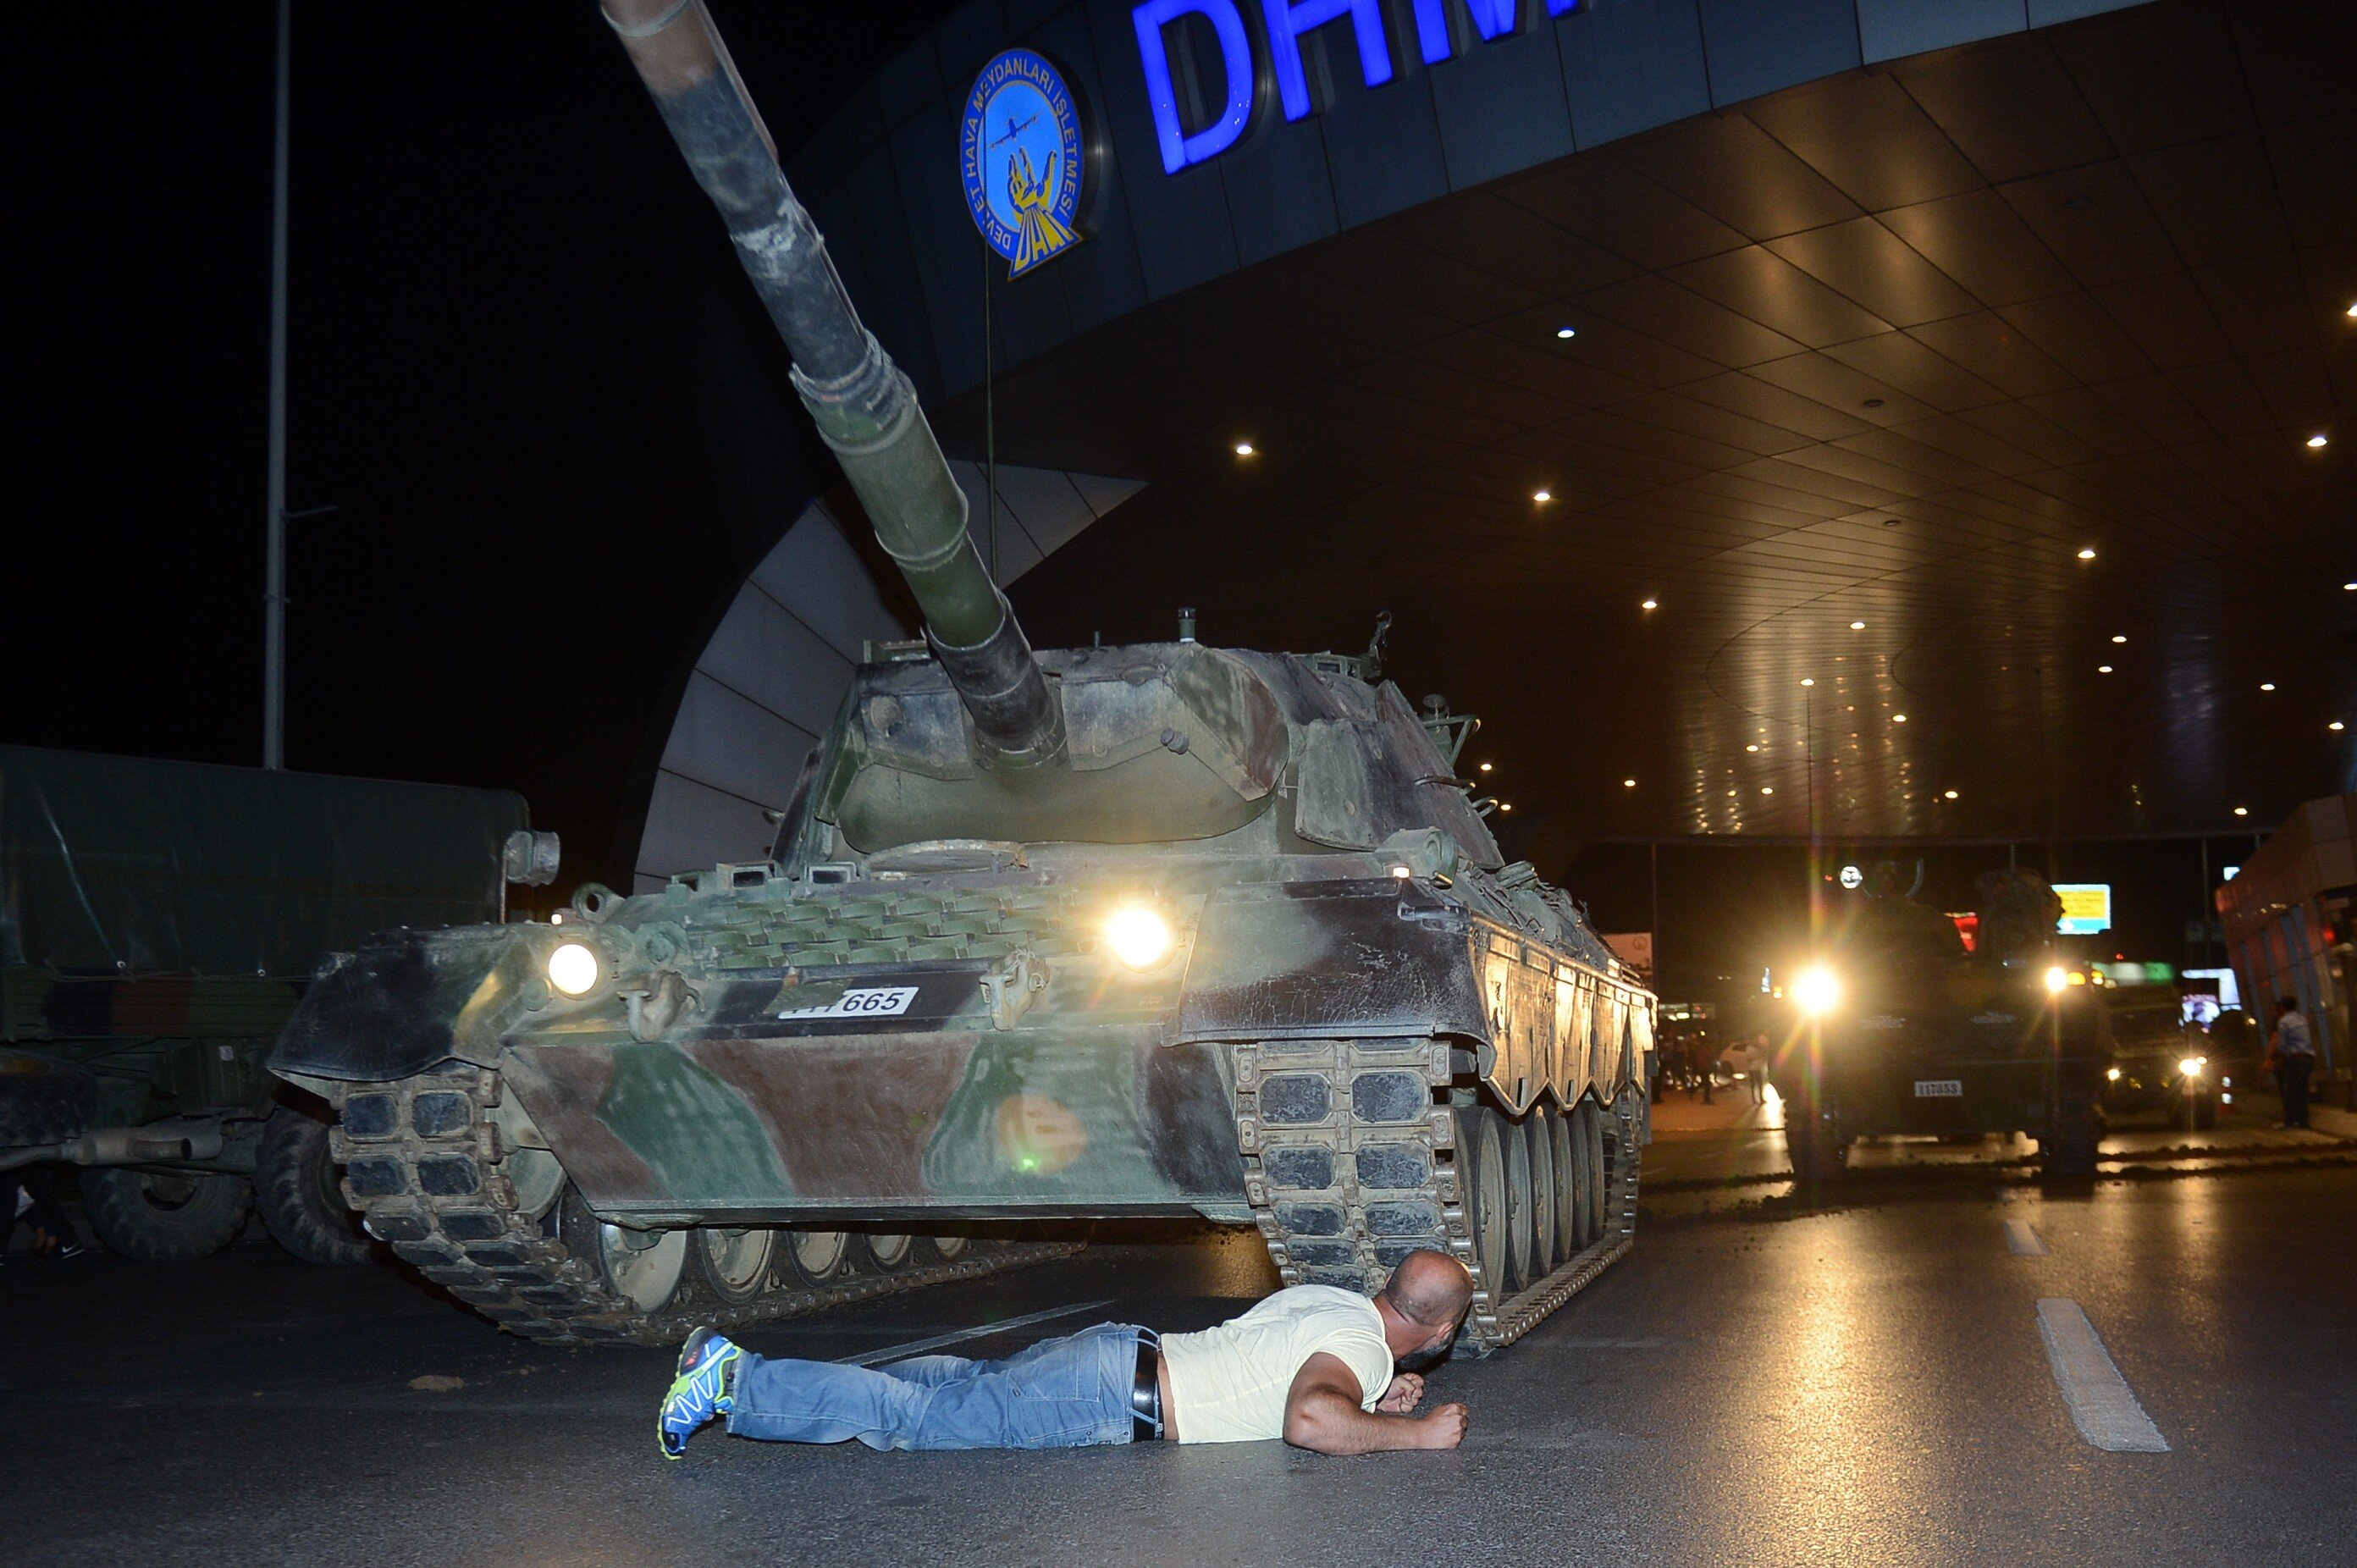 """Metin Doğan, who laid down in front of a tank and became one of the many symbols of that night, said that coup soldiers threatened to shoot him if he did not back down, to which he responded: """"I'm a Turkish soldier. Who are you?"""""""